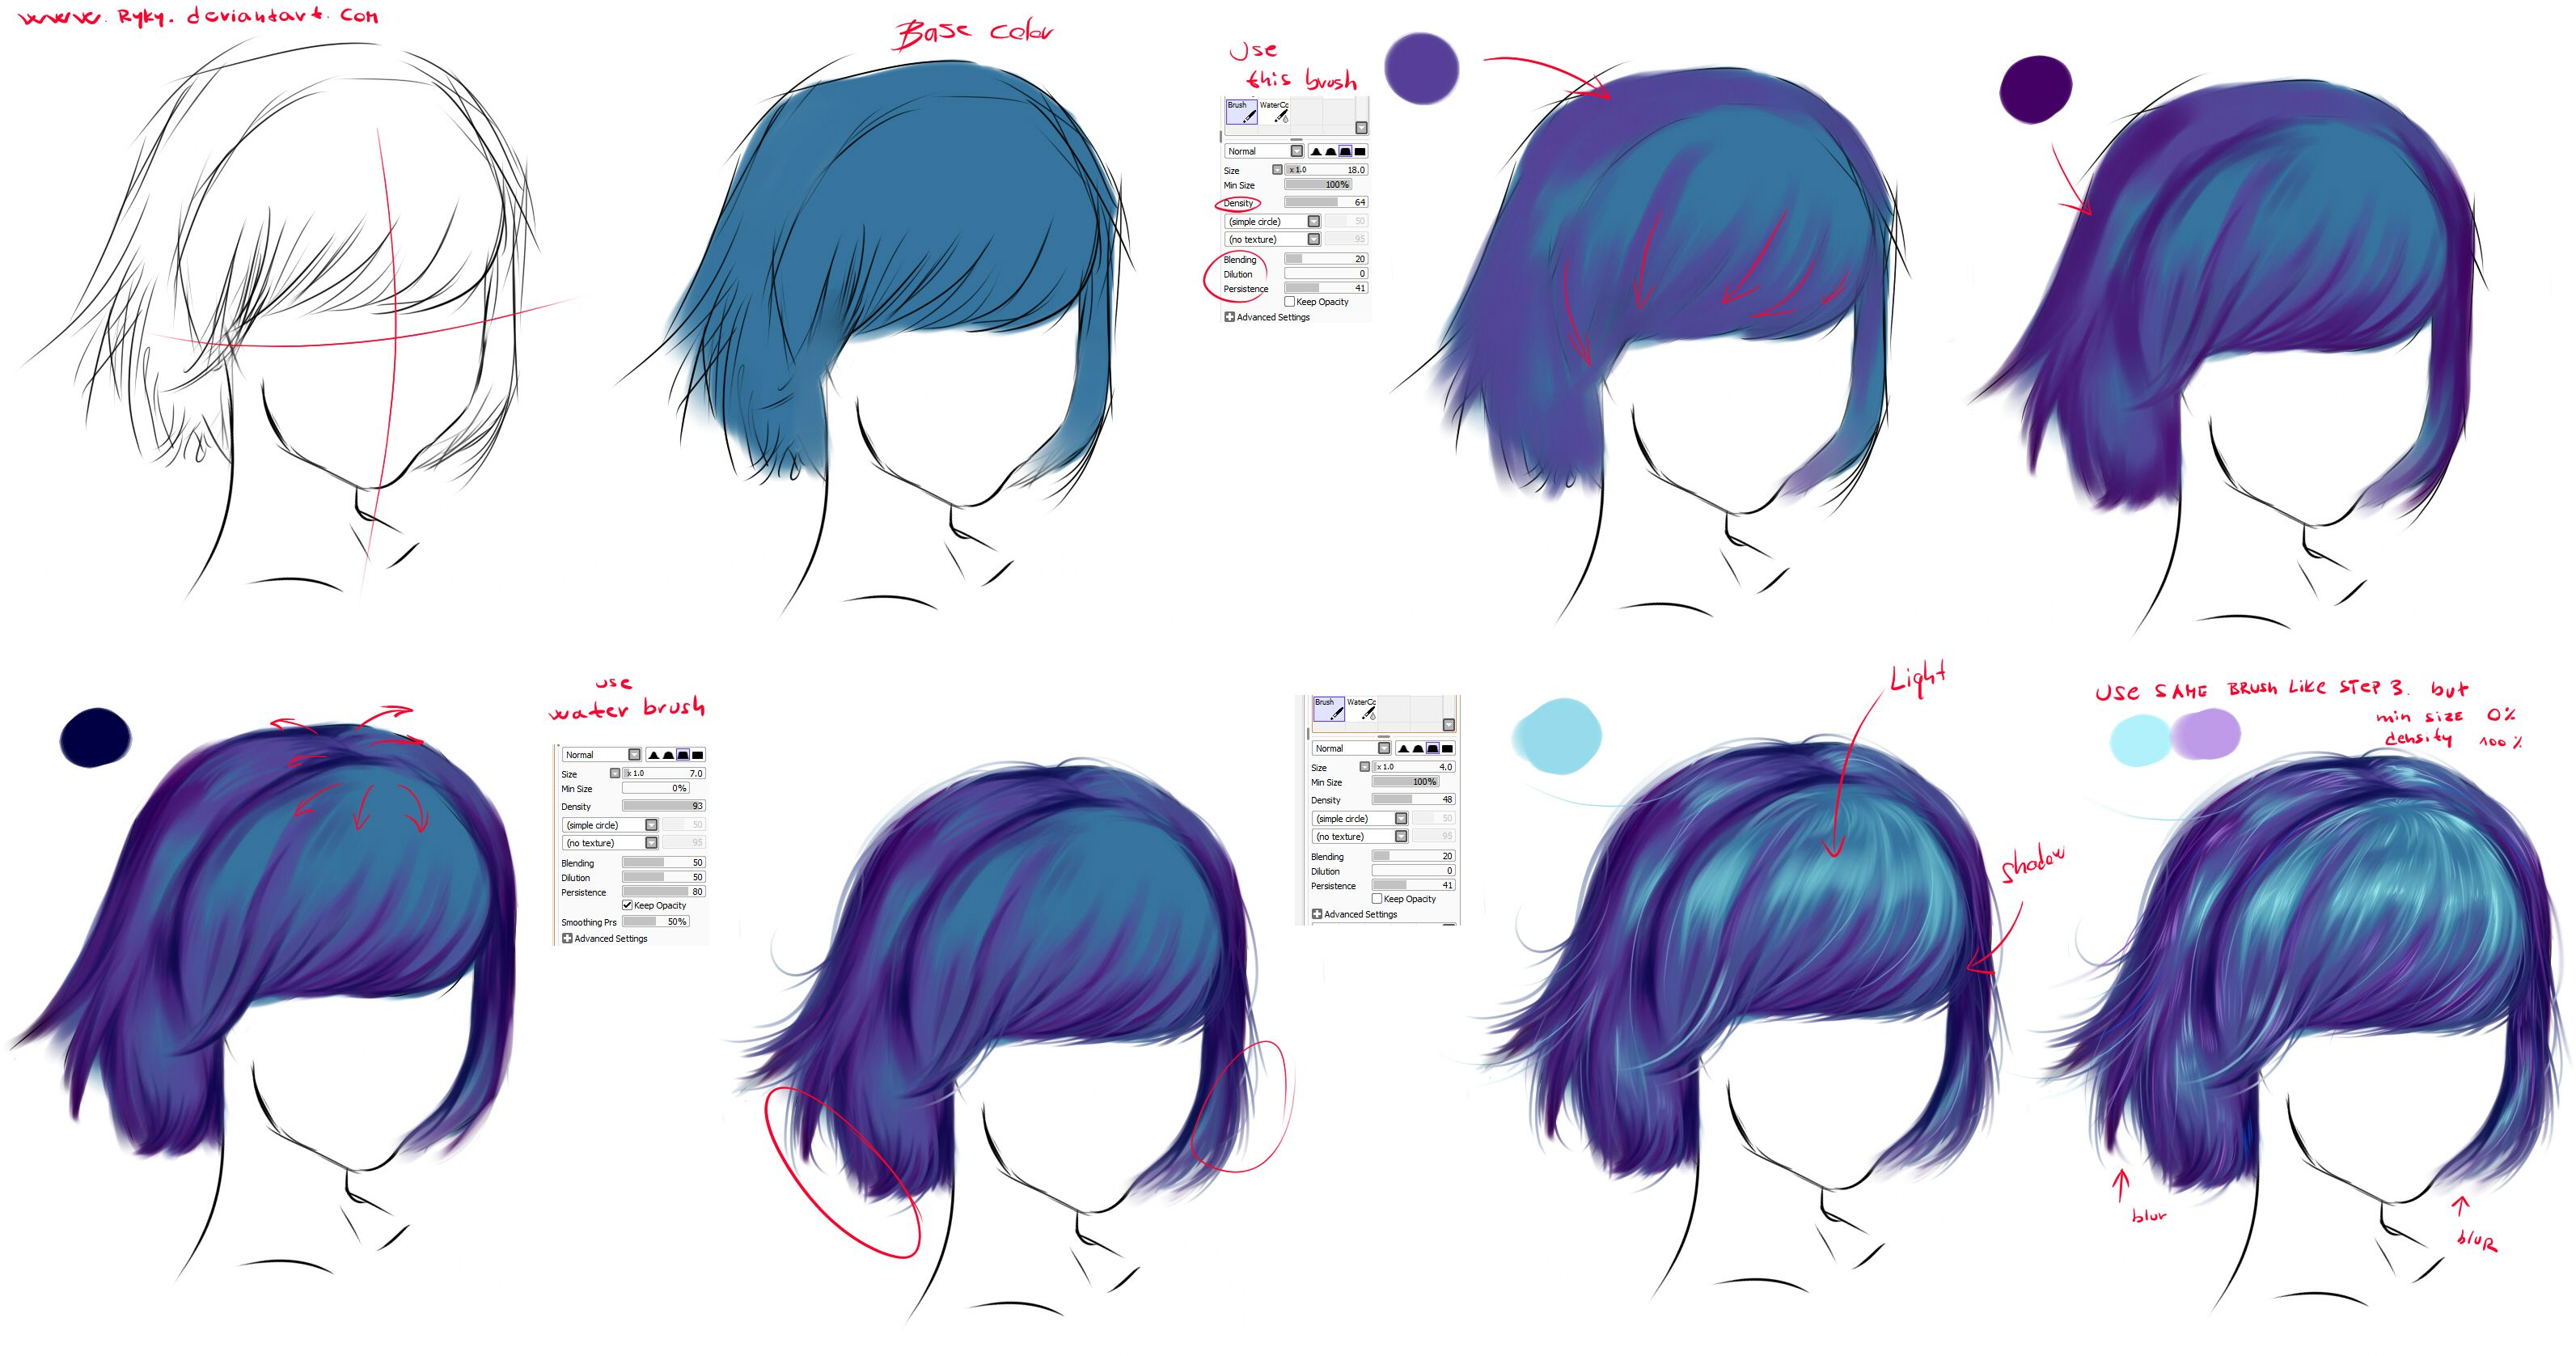 How To Draw Hair How To Draw Hair Digital Painting Tutorials Painting Tutorial